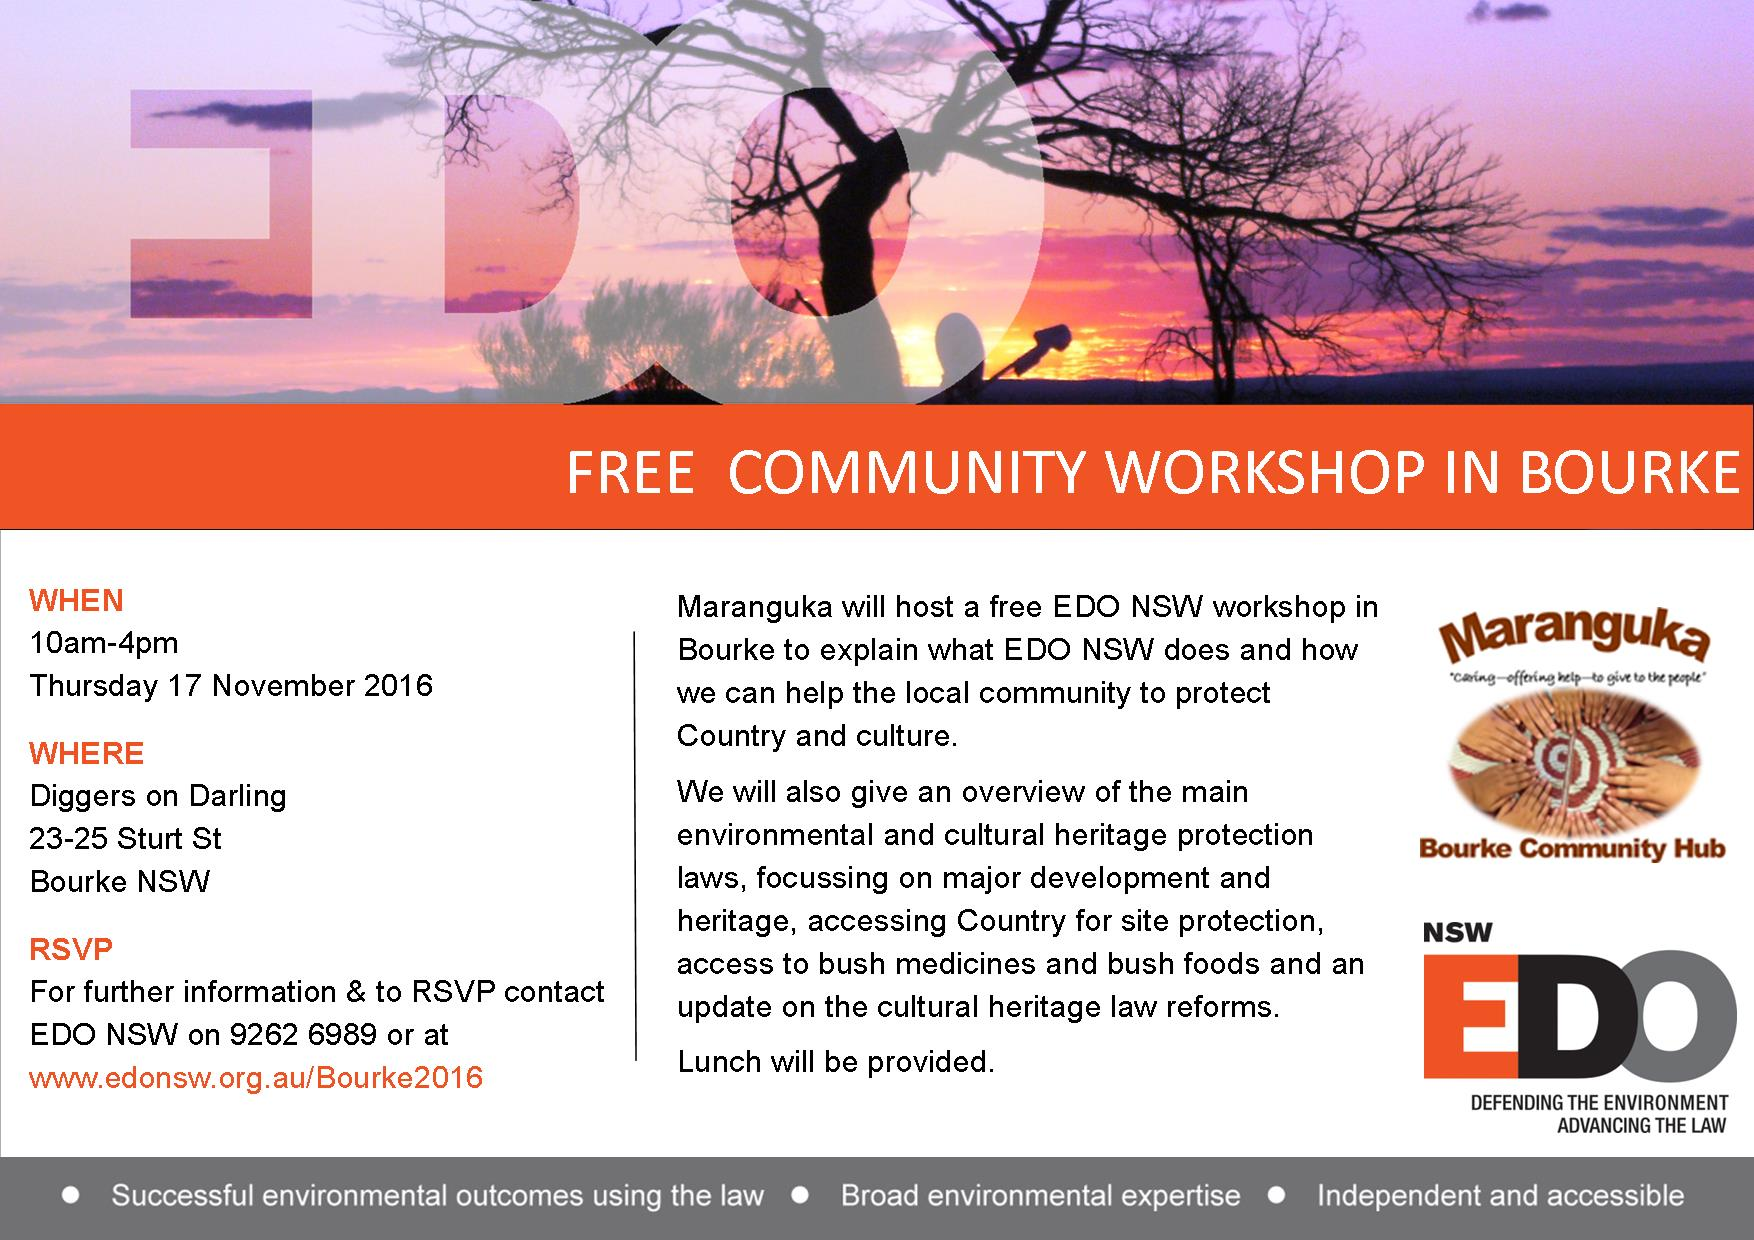 EDO_NSW_Bourke_Workshop_Flyer.jpg